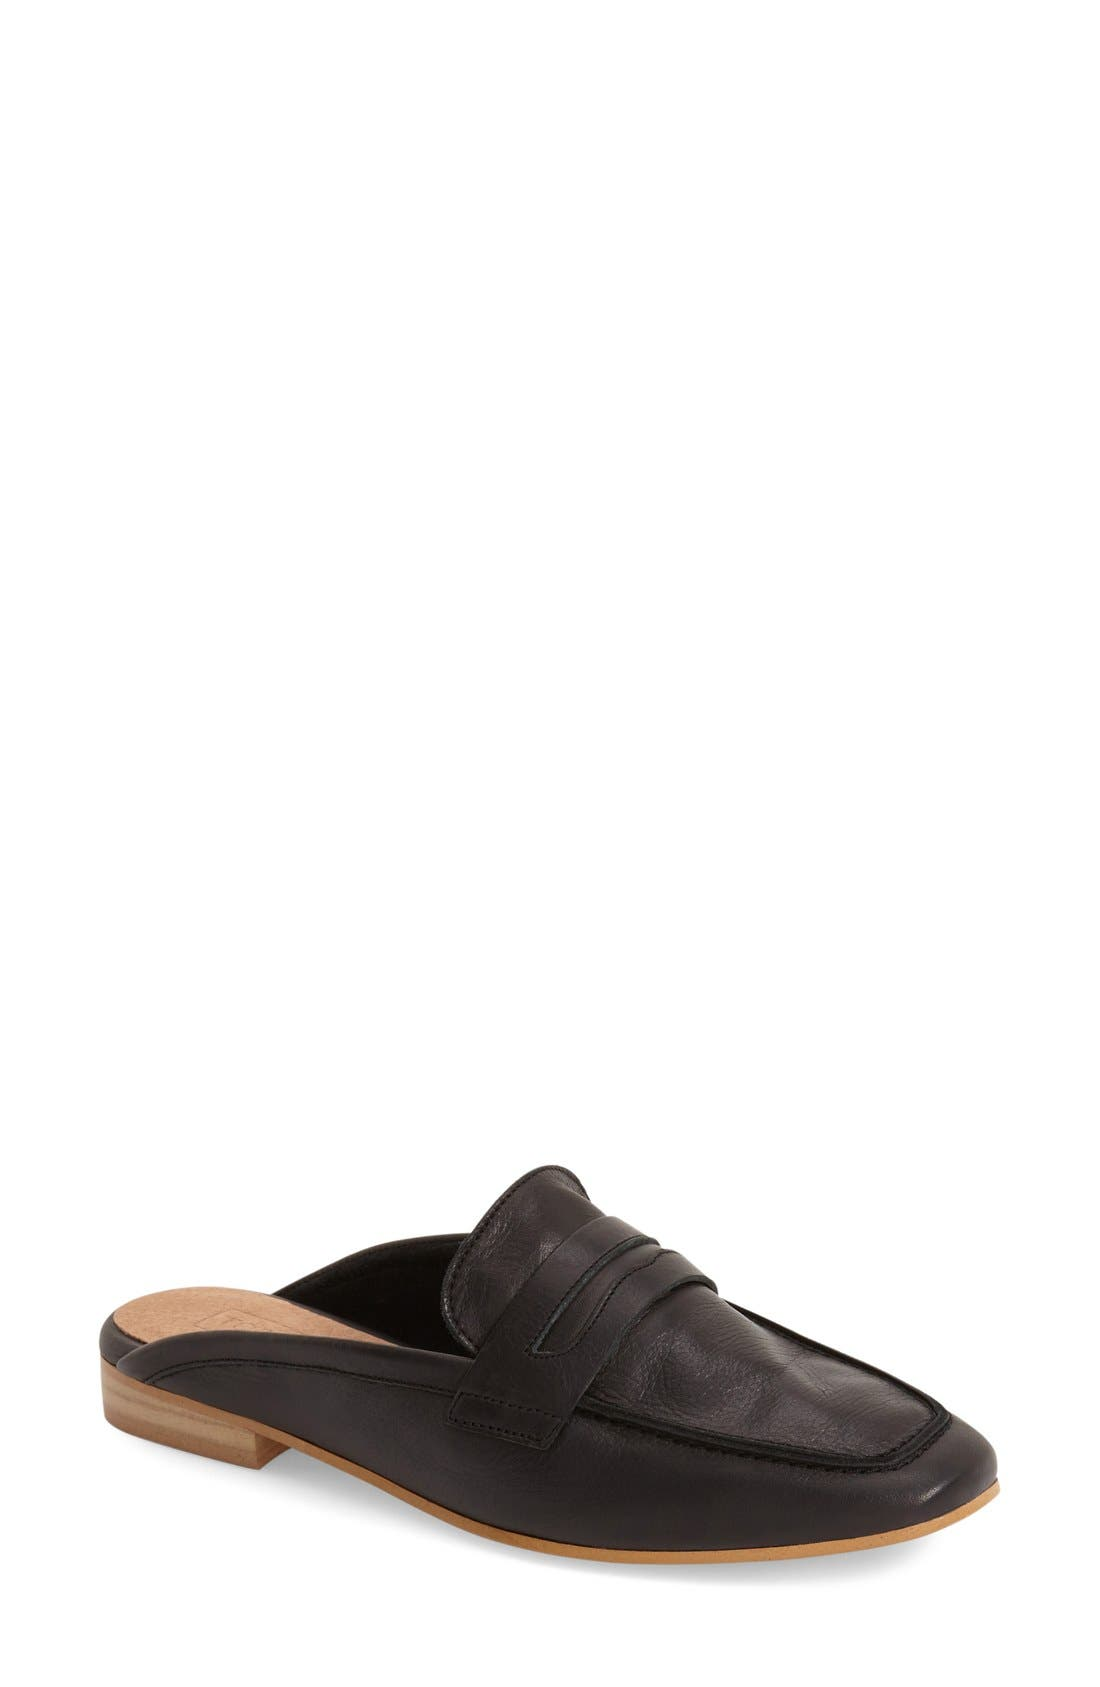 Alternate Image 1 Selected - Topshop 'Kola' Mule (Women)